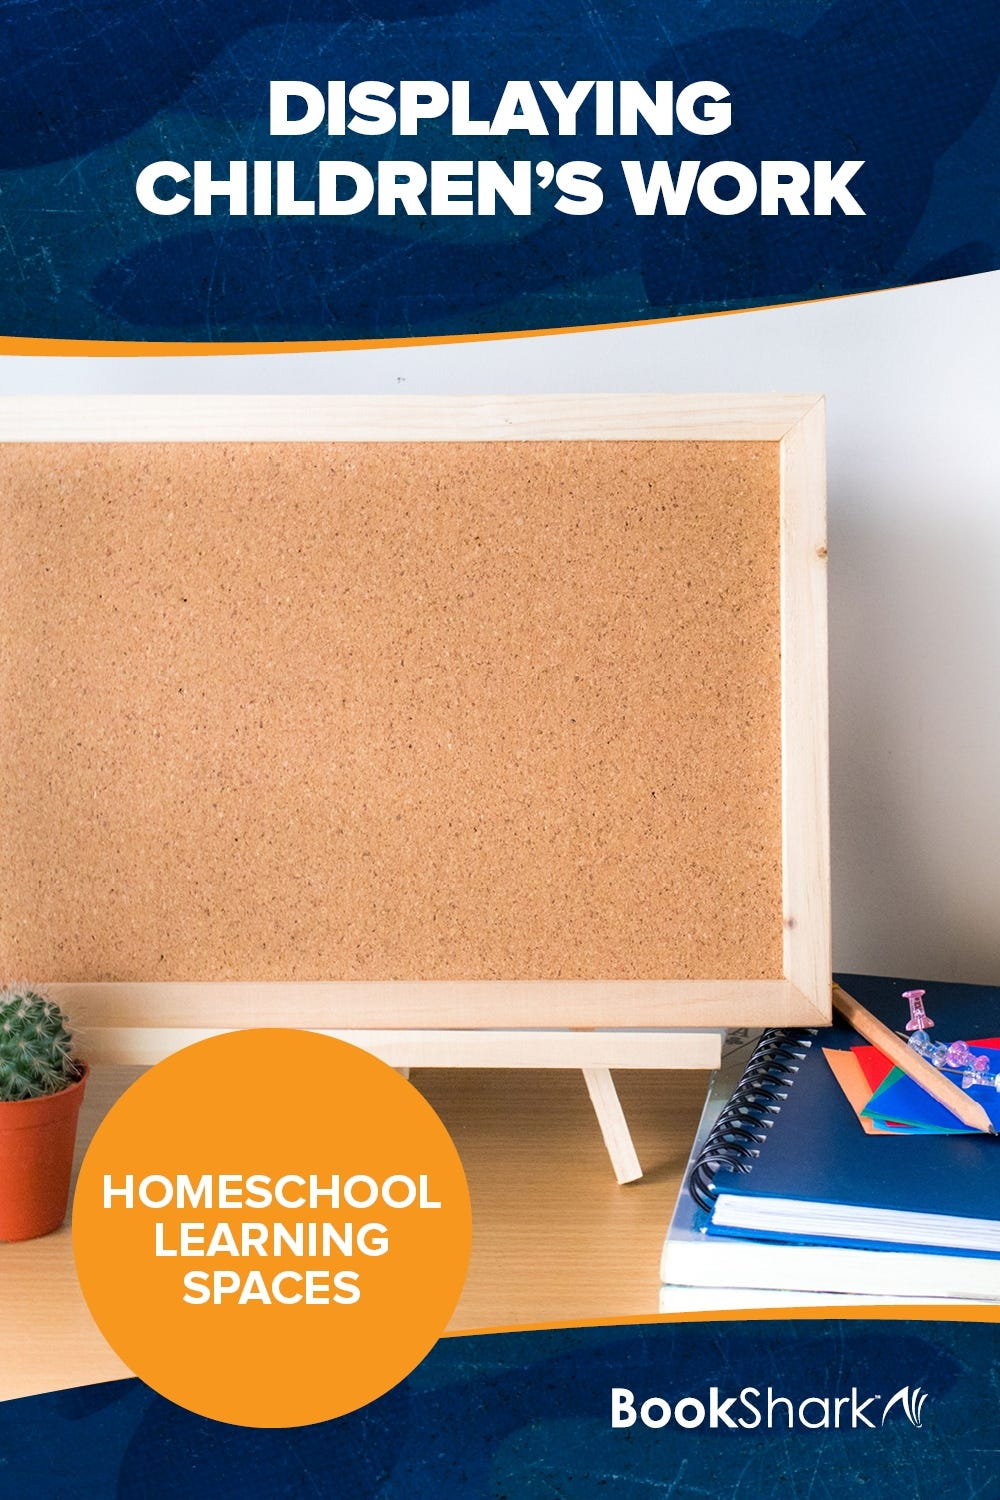 Homeschool Learning Spaces: Displaying Children's Work